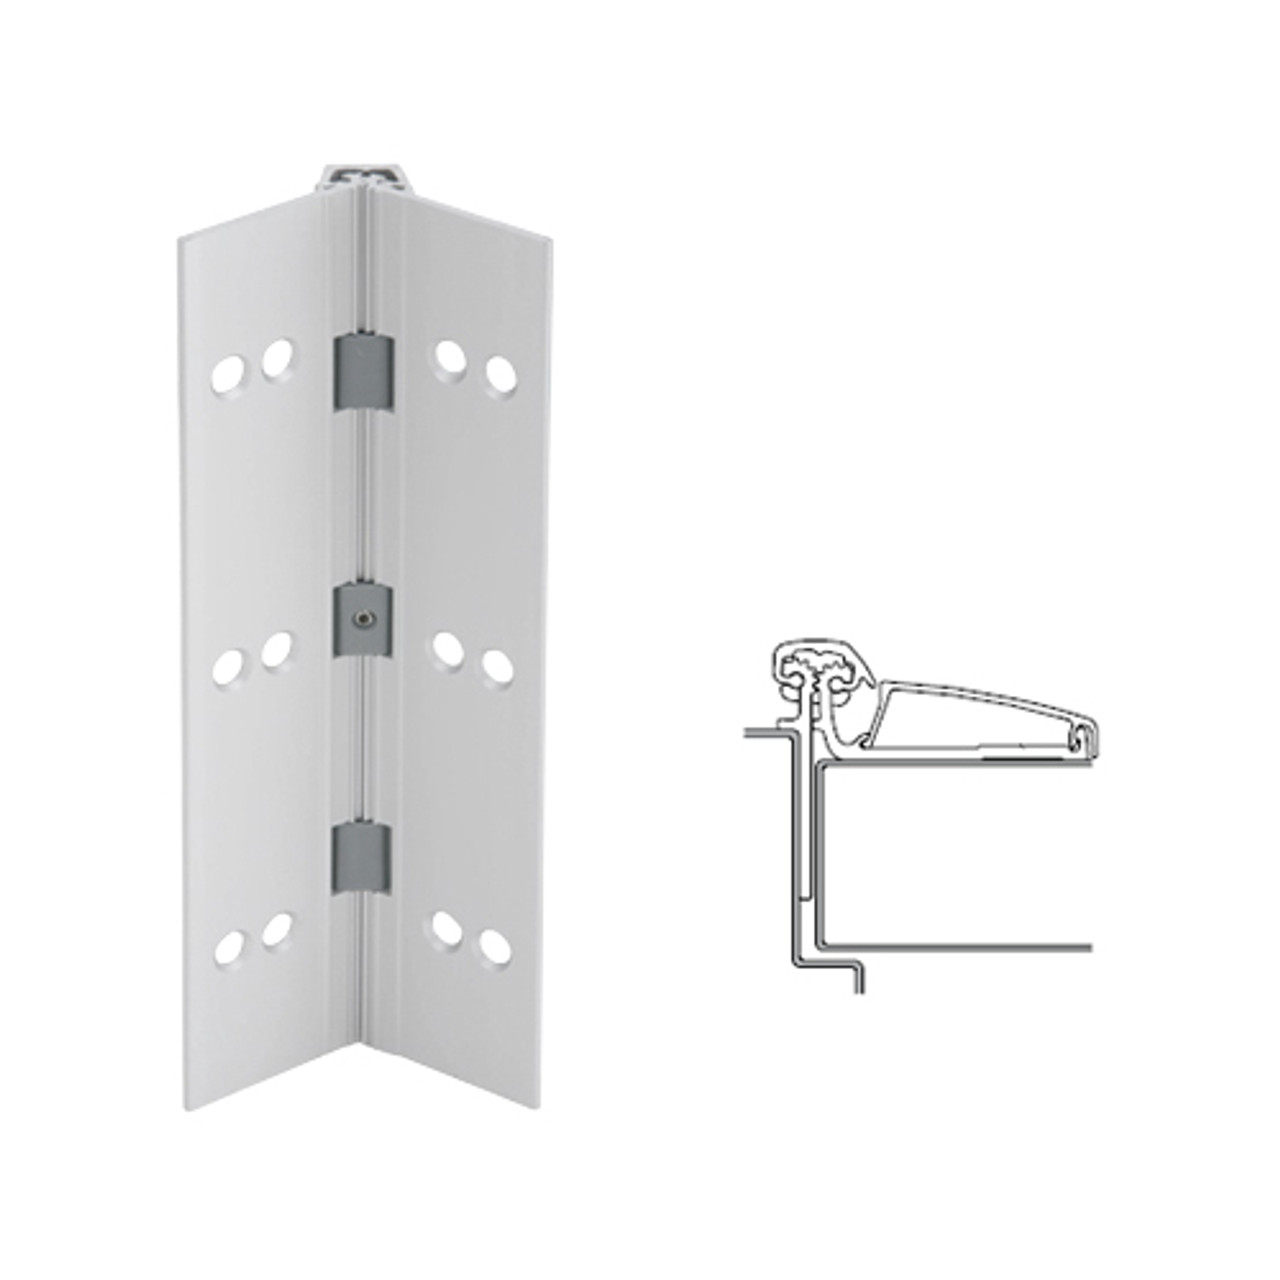 045XY-US28-83-TF IVES Adjustable Half Surface Continuous Geared Hinges with Thread Forming Screws in Satin Aluminum